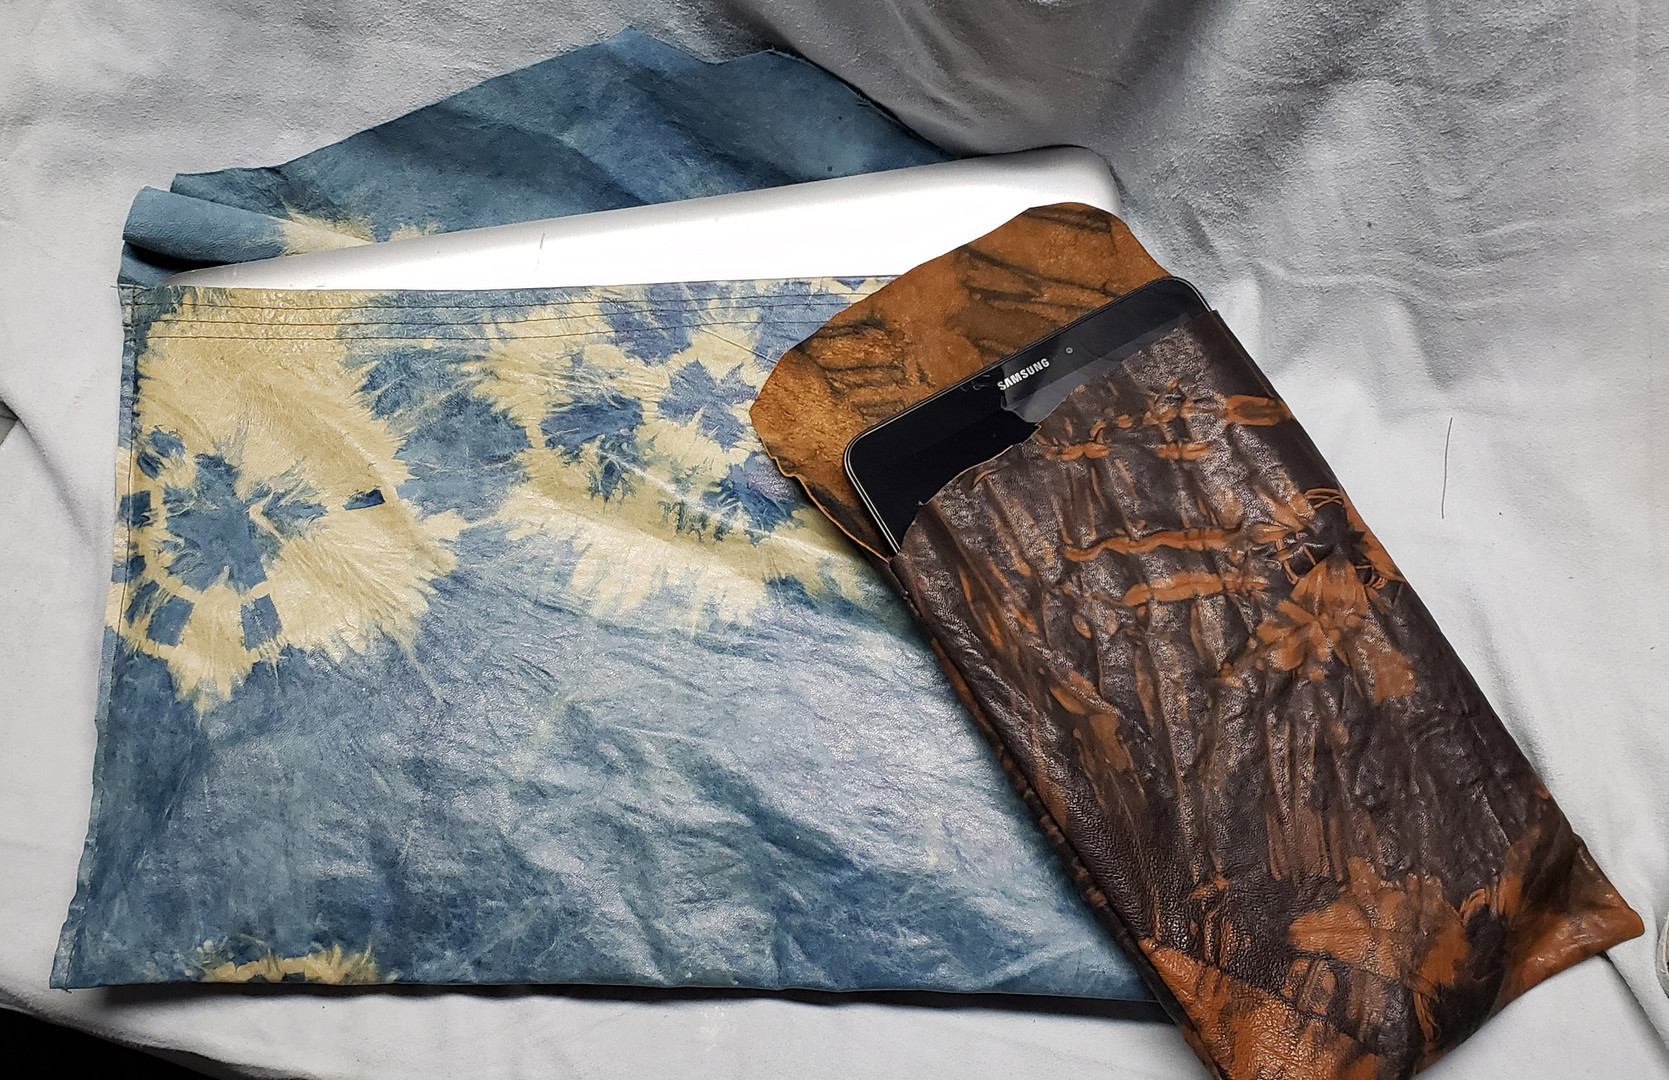 Upcycled Shibori Dyed Leather Tech Sleeves